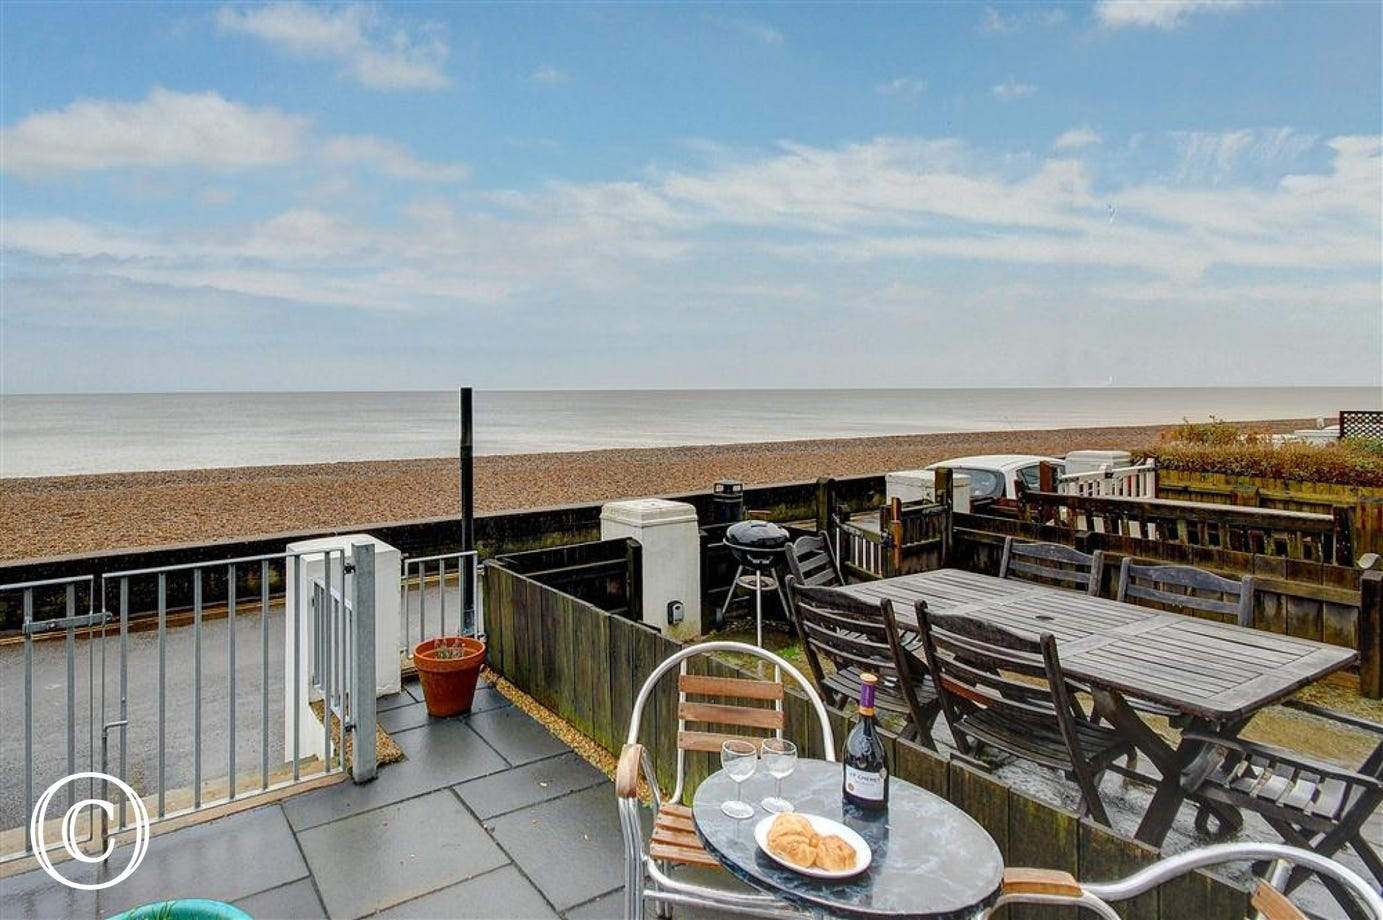 This fabulous sea side apartment also has this shared terrace with your own section and outside furniture to enable you to enjoy the sea.